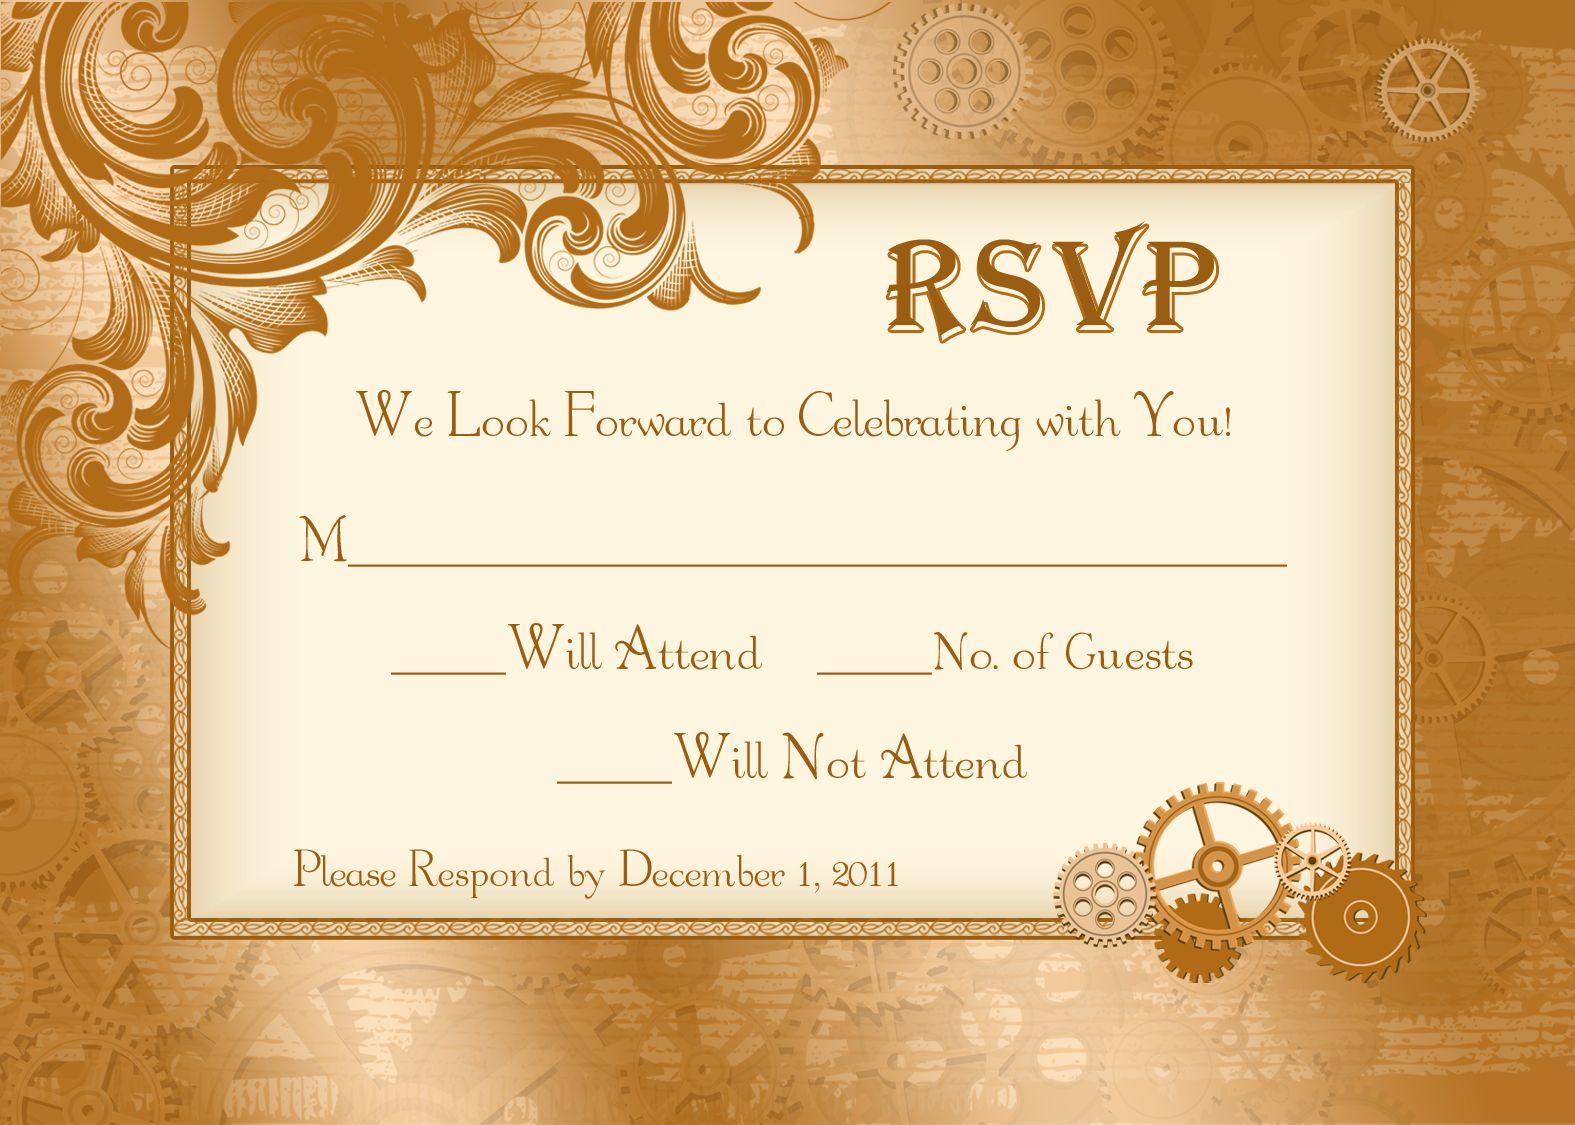 RSVP cards designed by my super talented aunt.